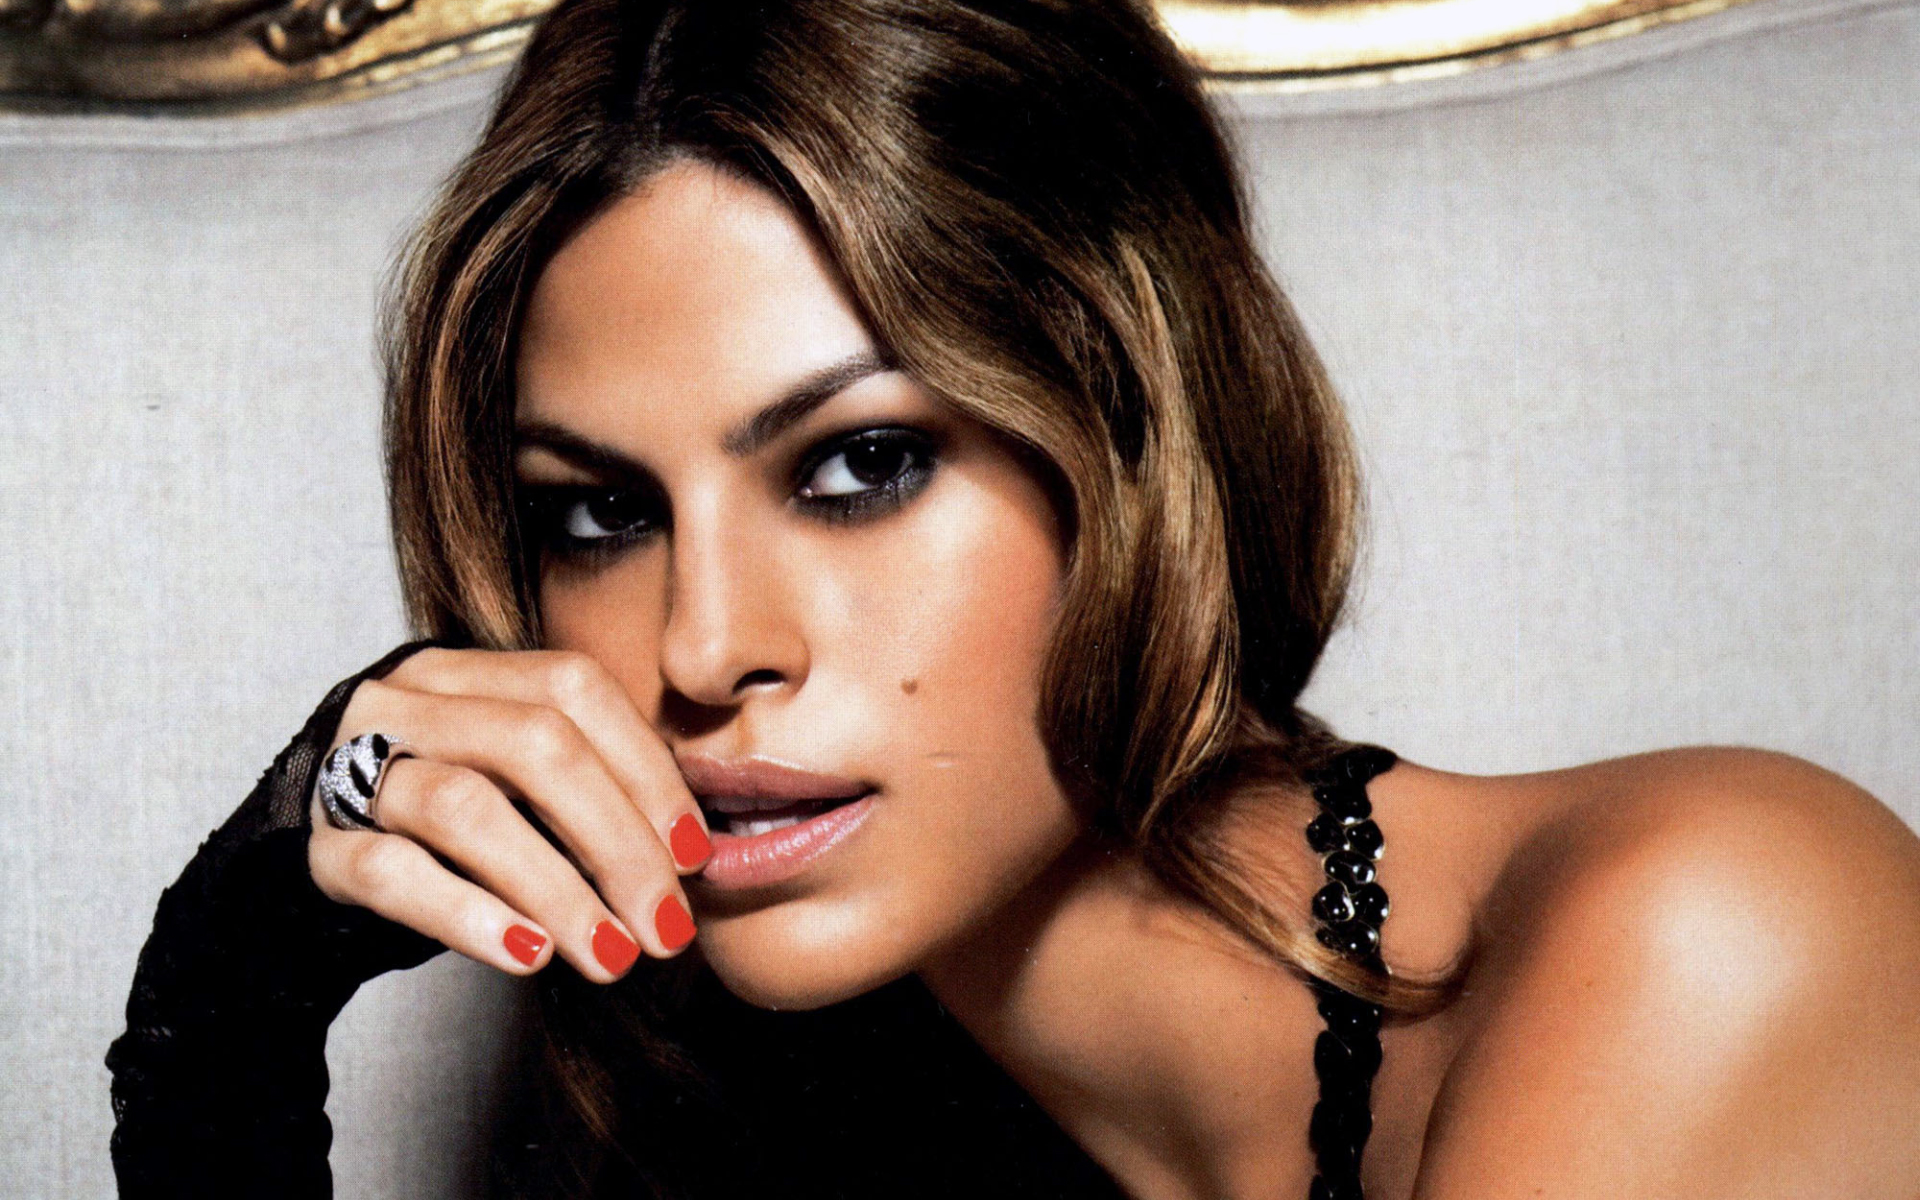 eva mendes wallpaper hd high quality Download Hd eva mendes hd